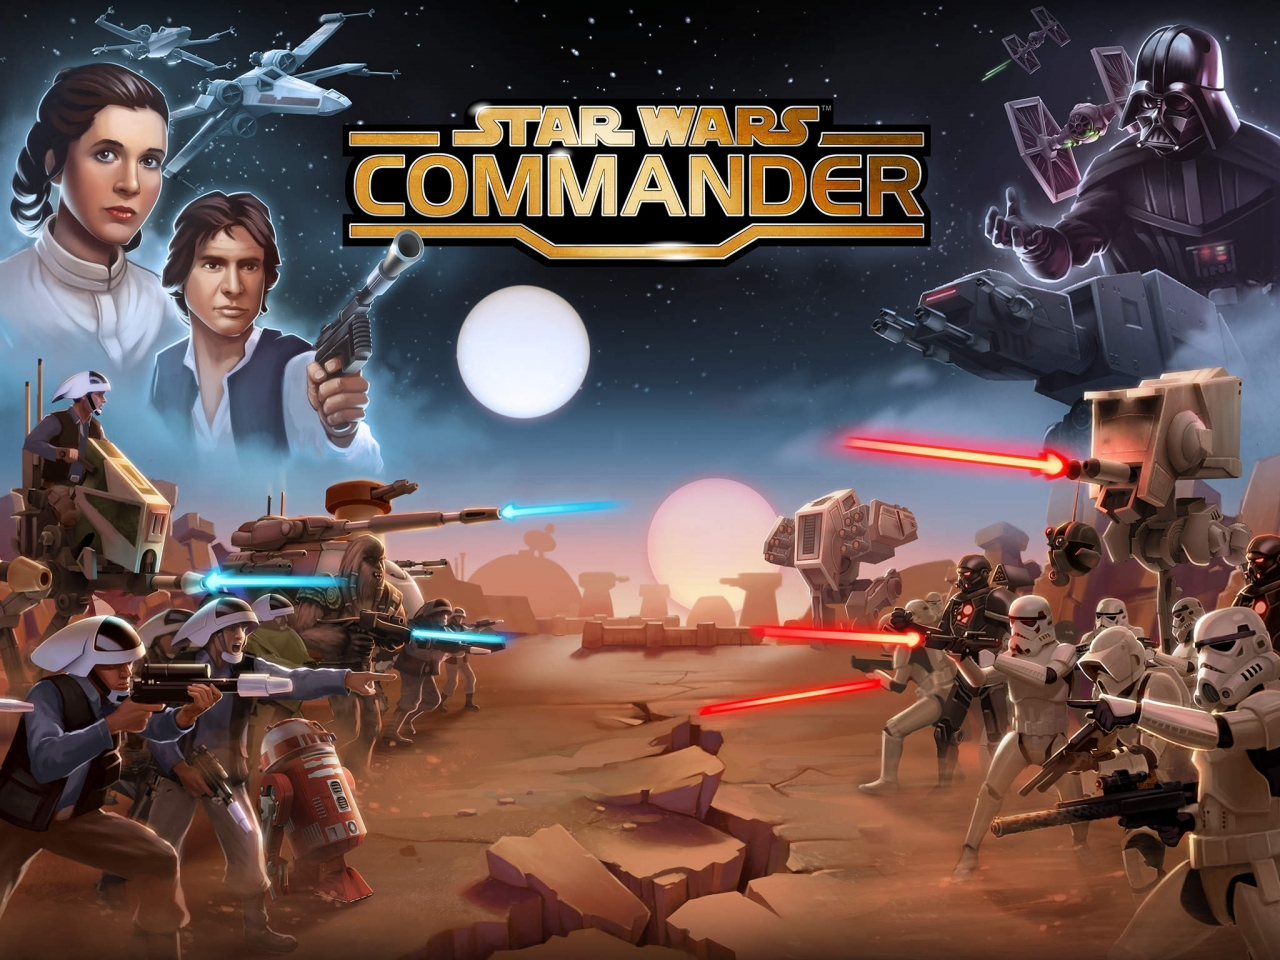 Foto de Star Wars: Commander na Área